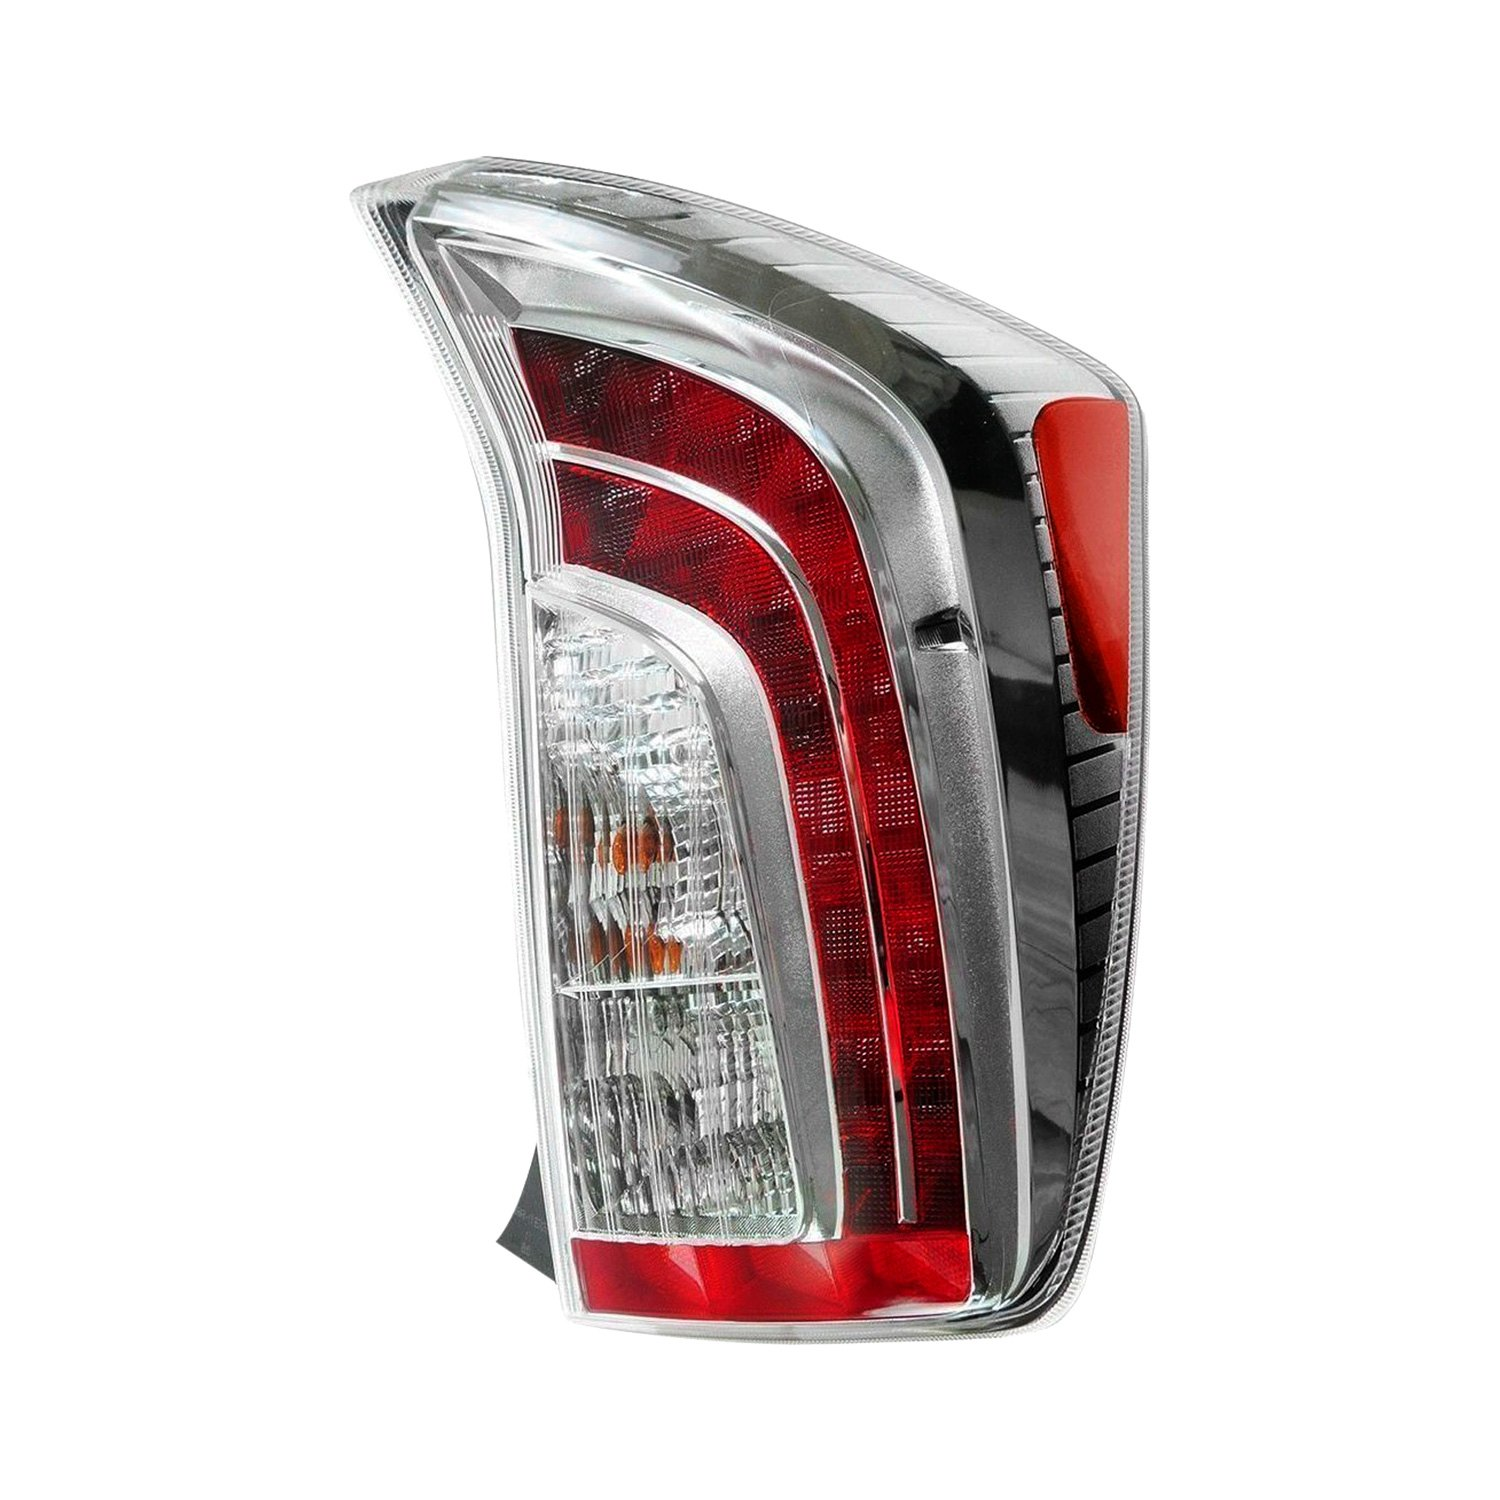 depo toyota prius 2012 2014 replacement tail light. Black Bedroom Furniture Sets. Home Design Ideas